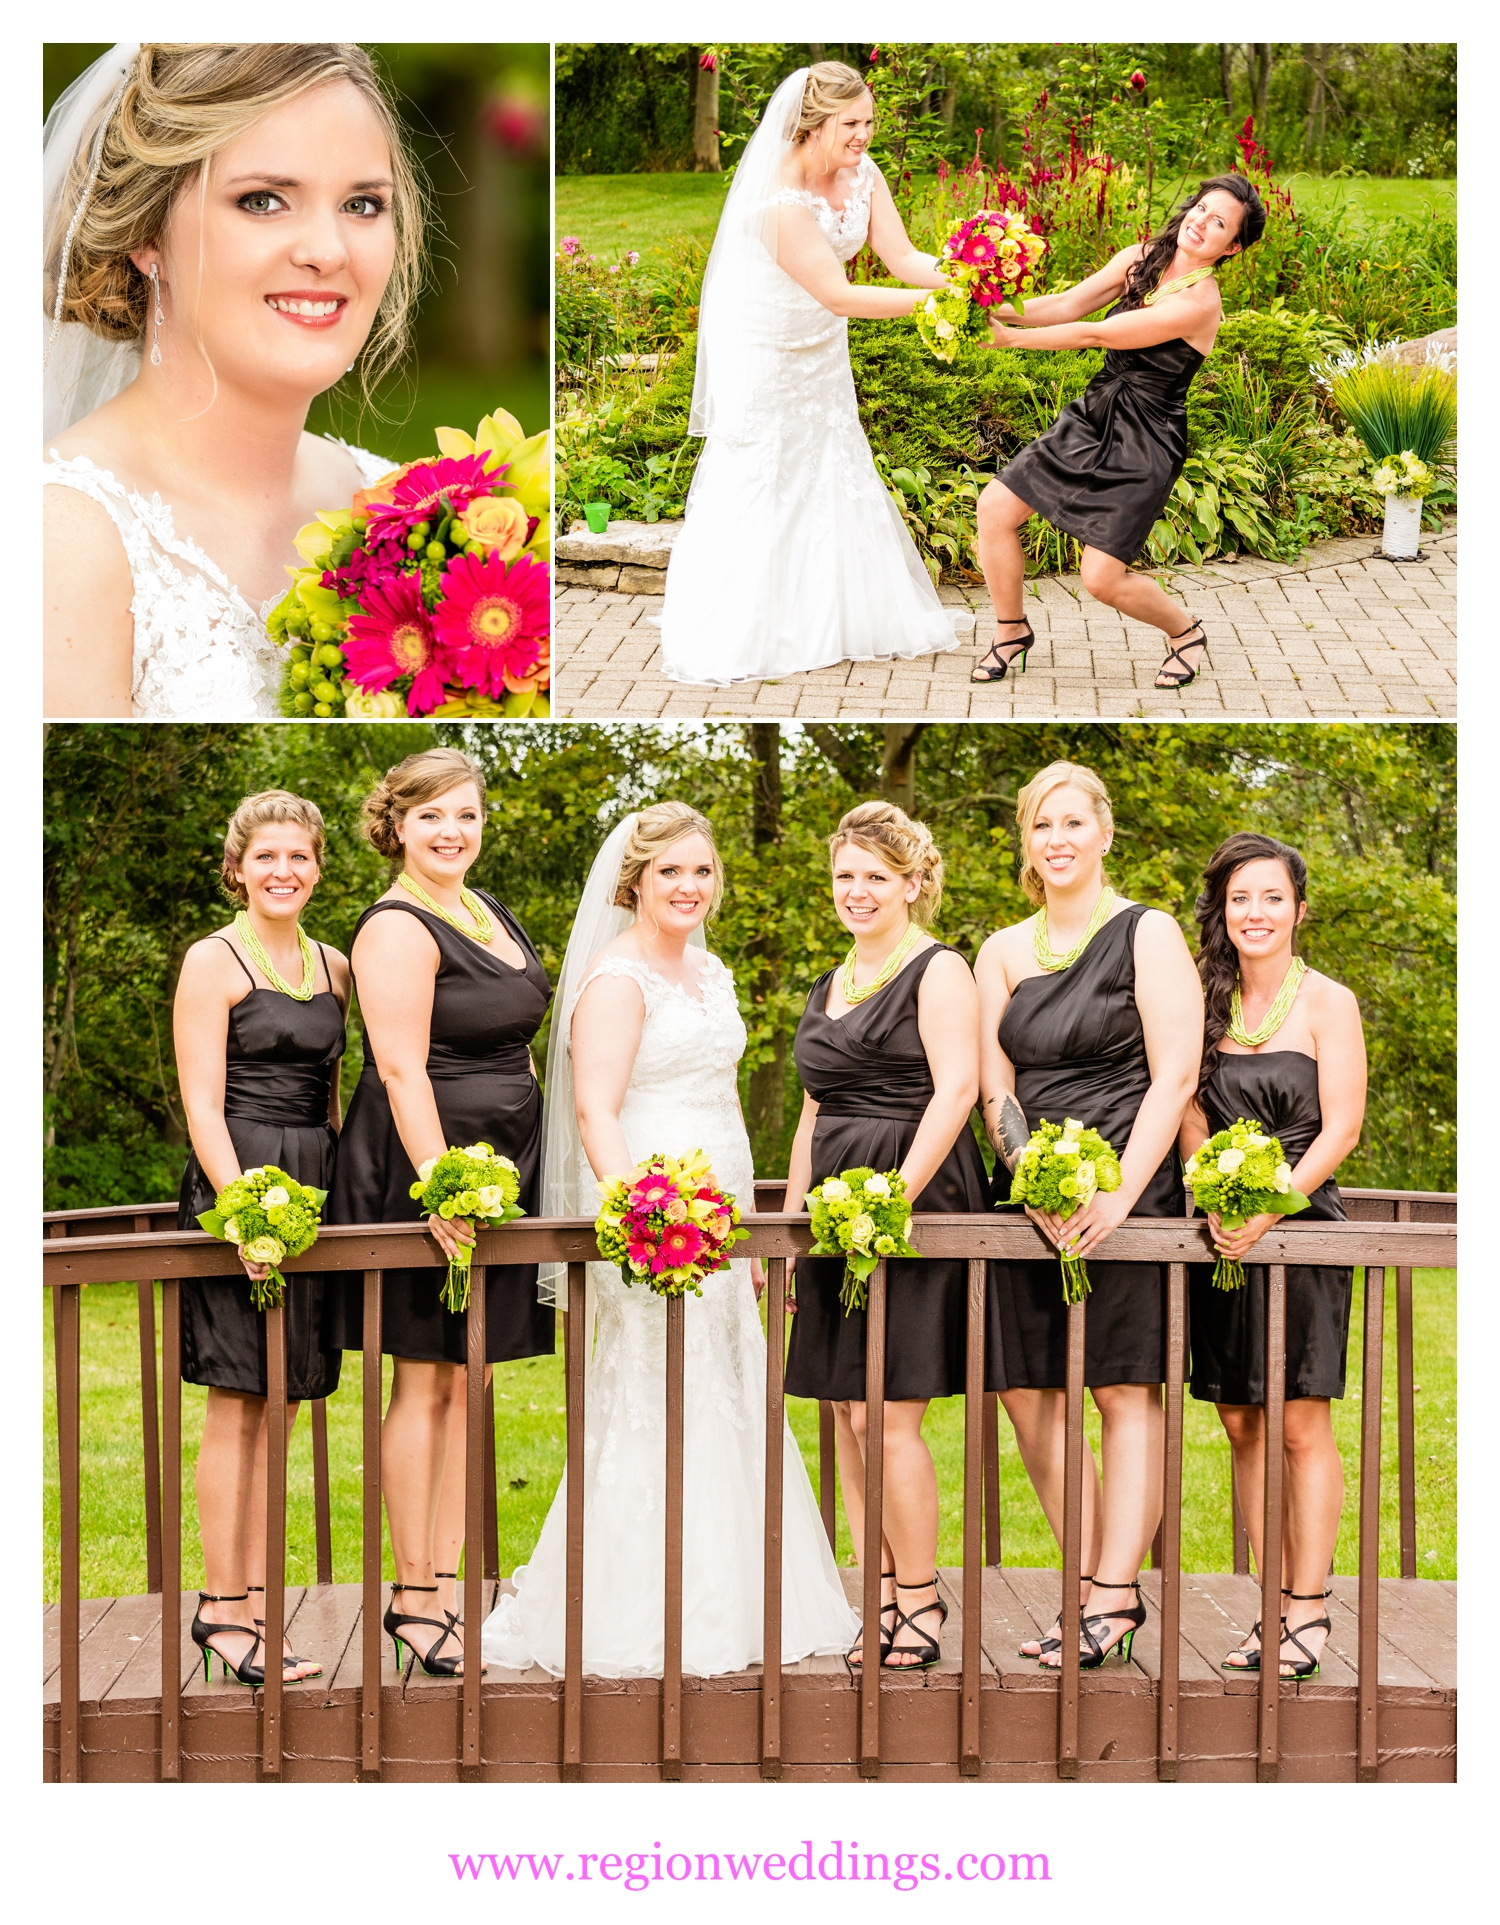 The bridesmaids show off their wedding flowers.